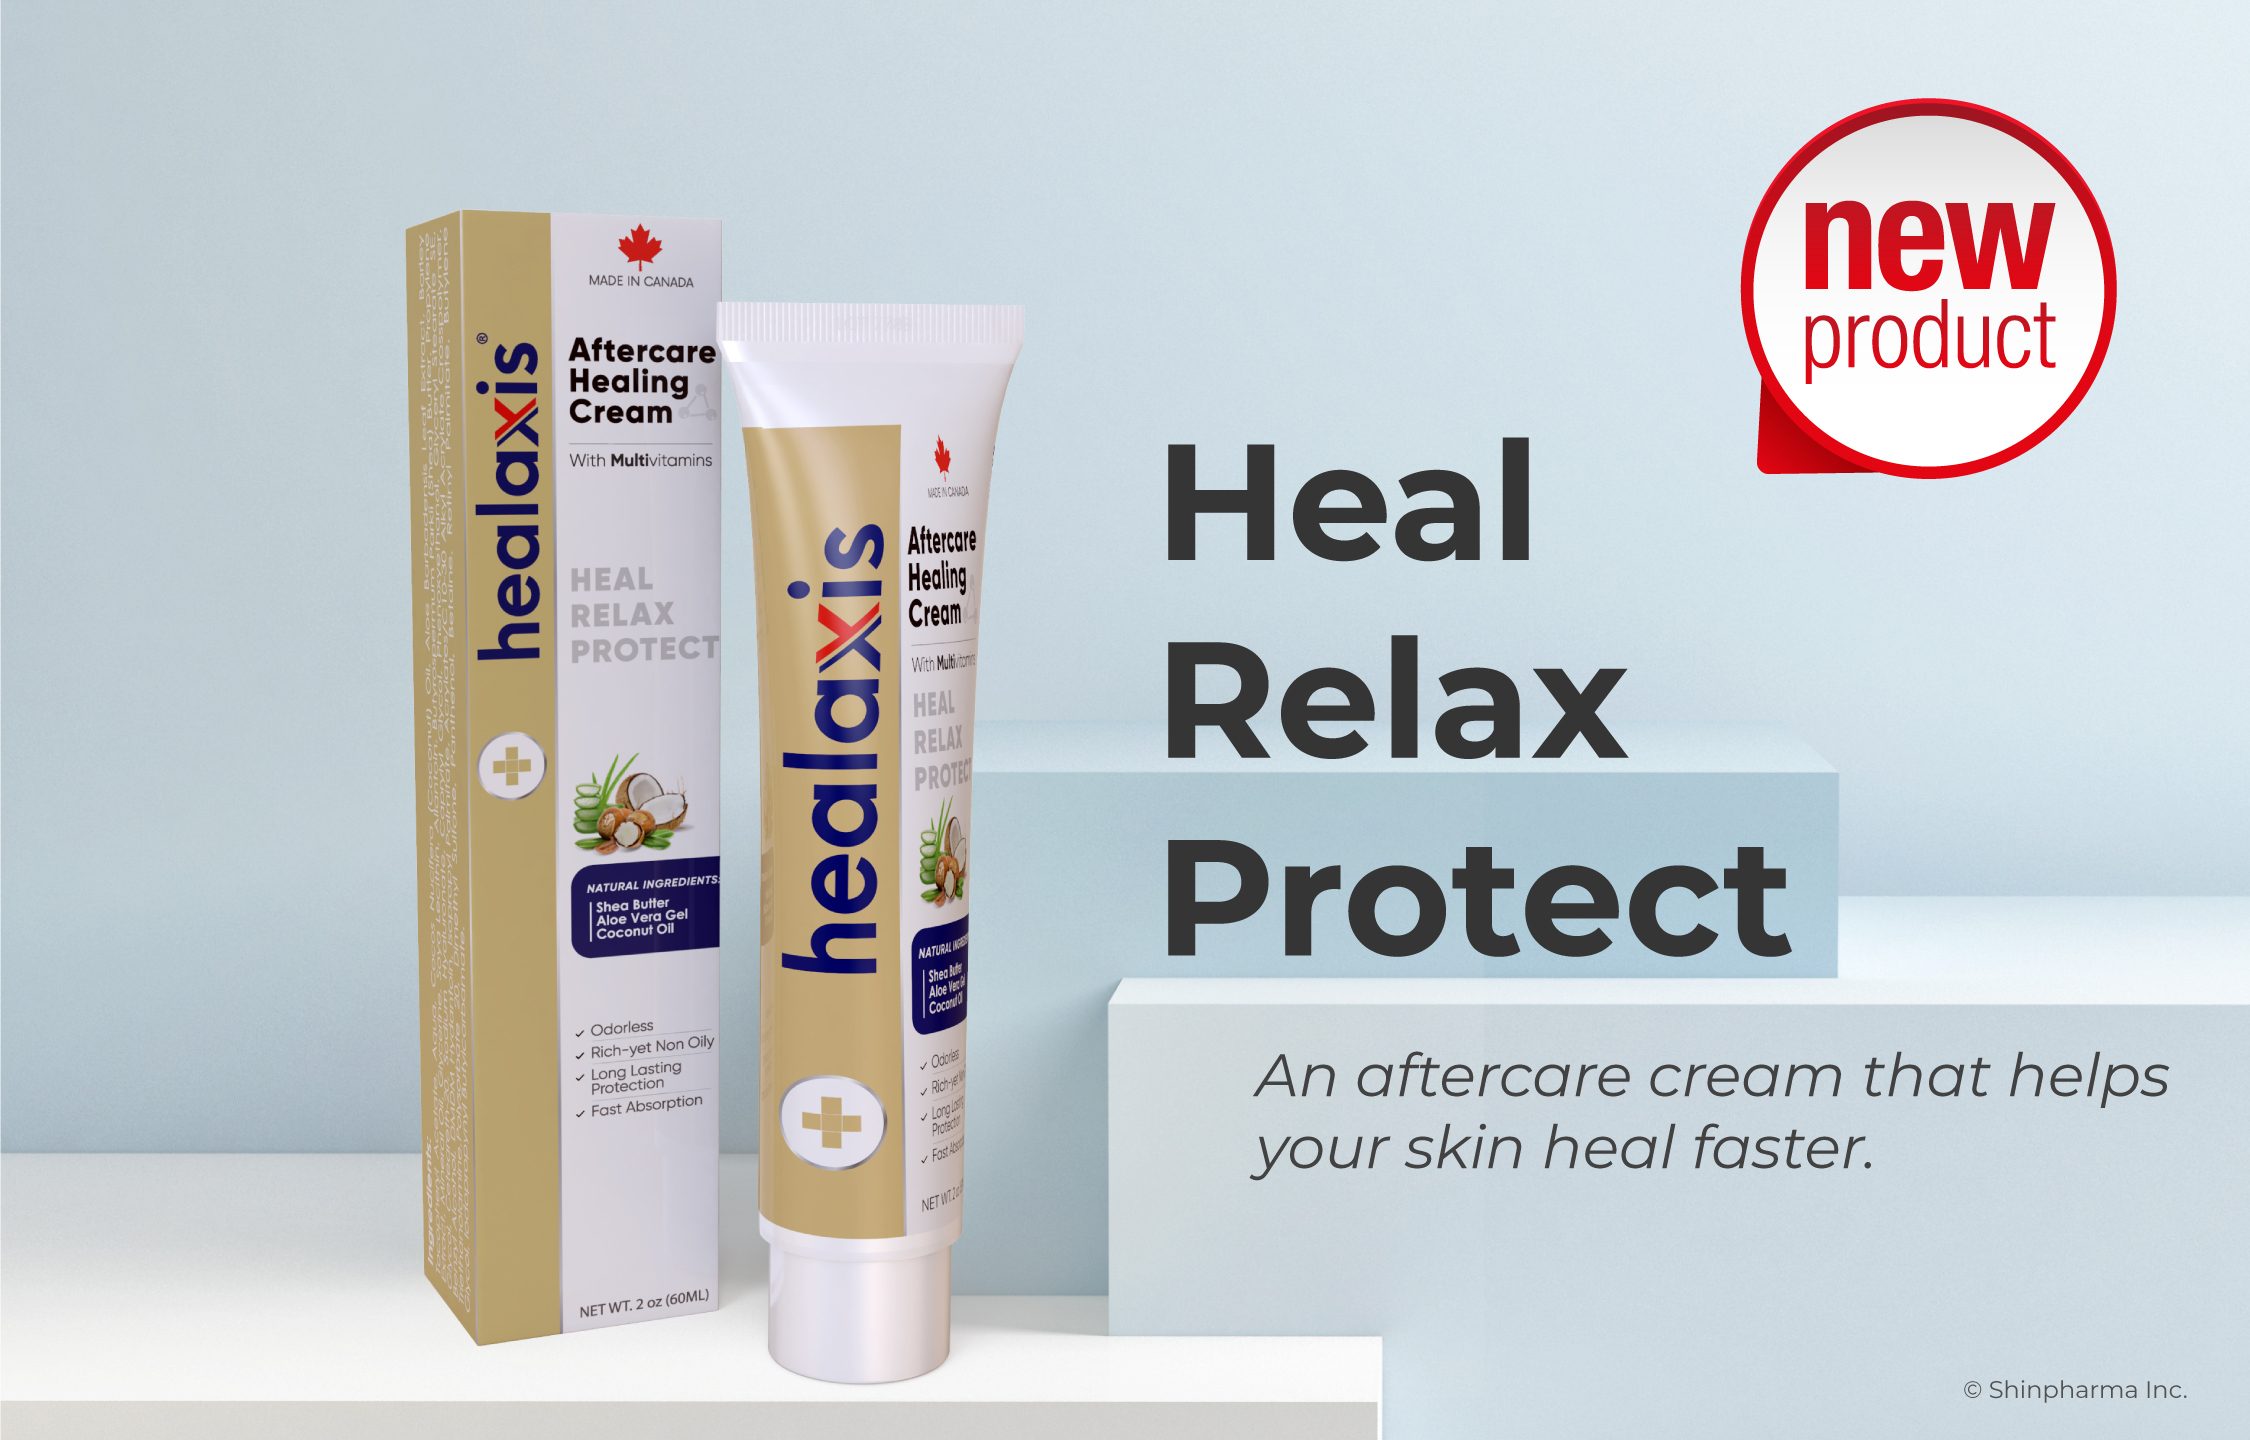 Shinpharma Inc. with a Flagship Product of Dr. Numb® Introduces Its Healing Formula: Healaxis®  Aftercare Healing Cream